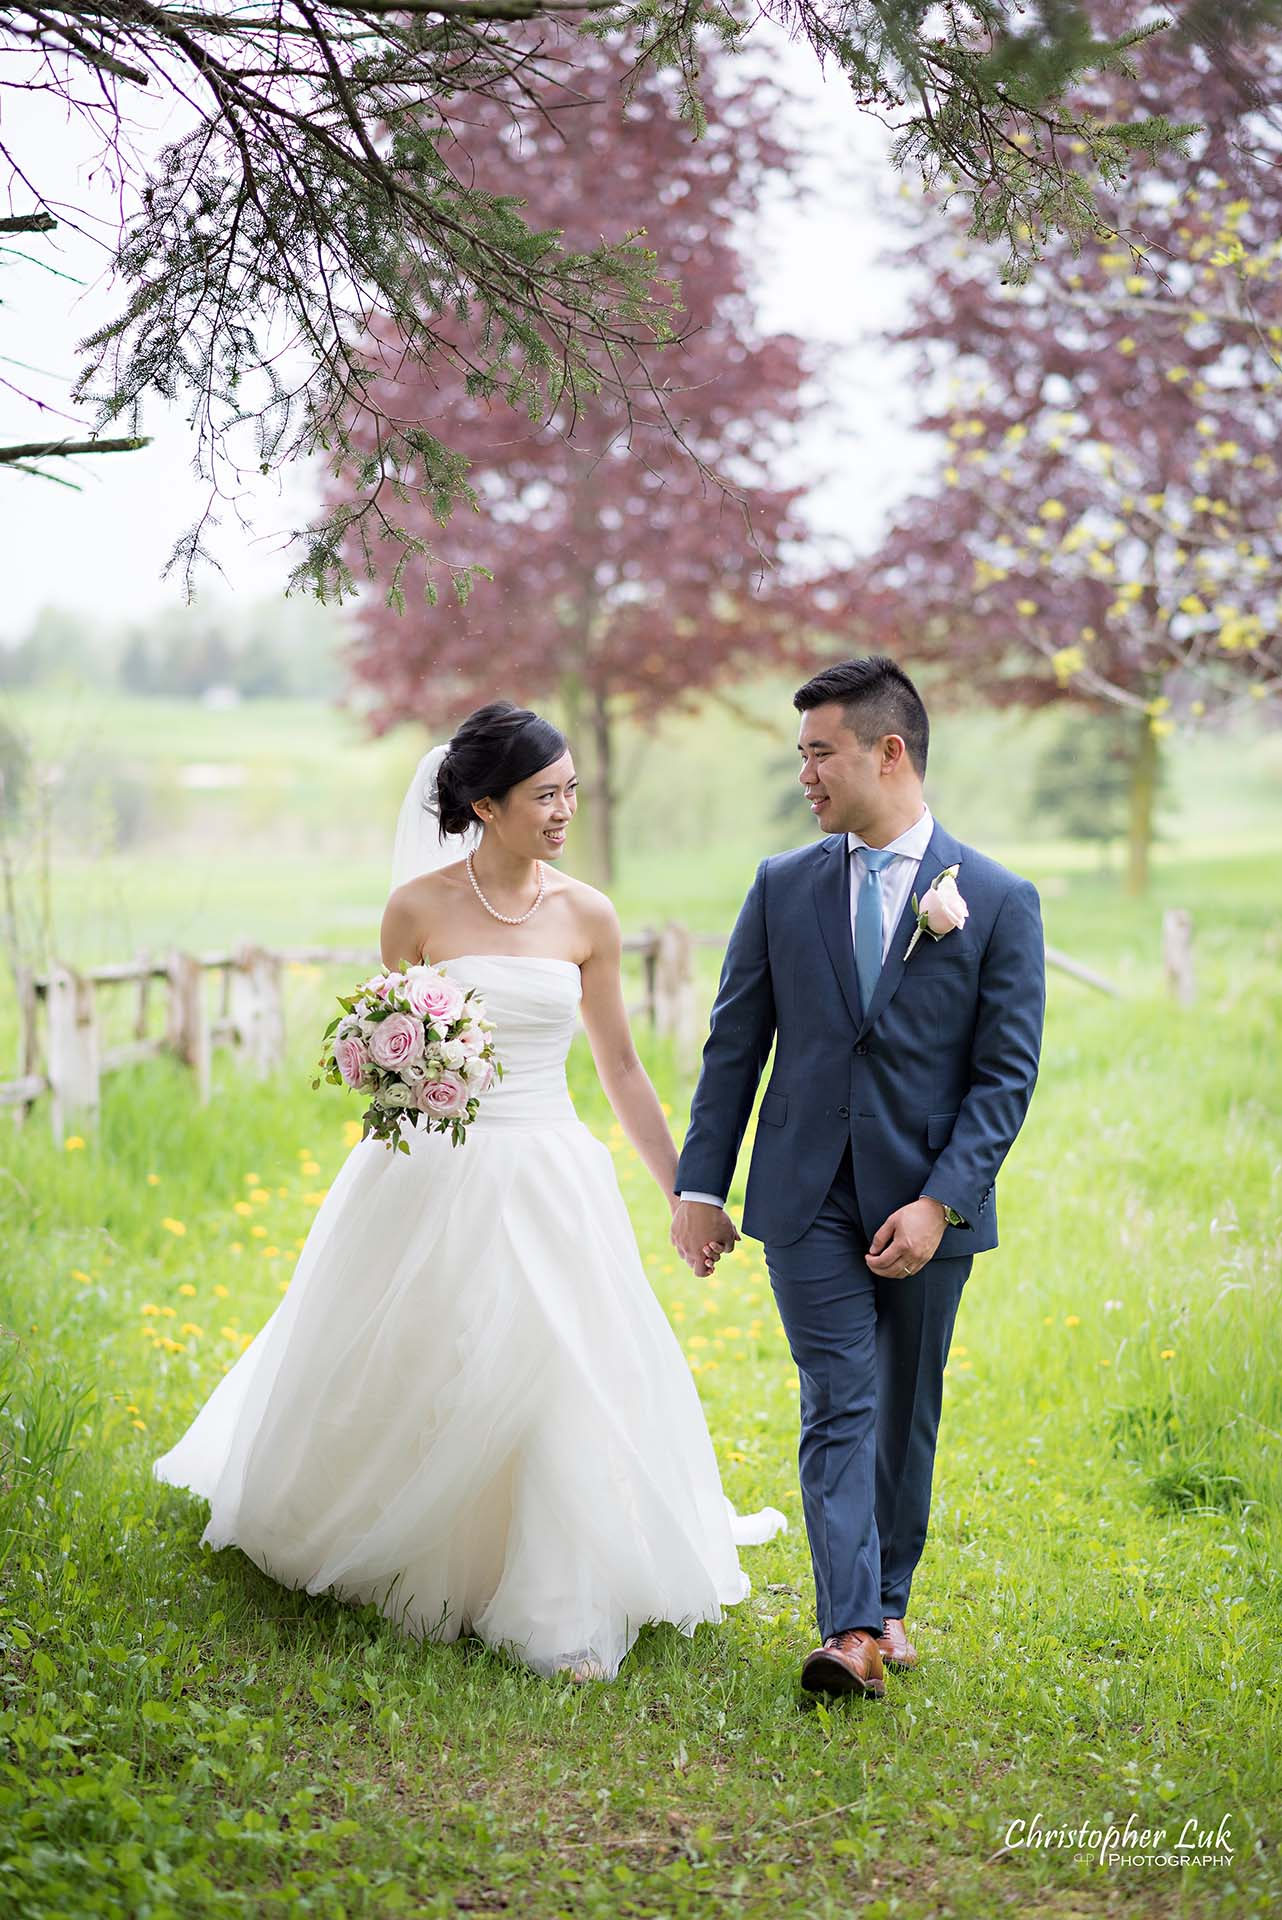 Christopher Luk Toronto Wedding Photographer Angus Glen Golf Club Markham Main Blue Barn Farm Historic Estate Building Together Natural Candid Photojournalistic Bride Groom Holding Hands Together Walking Green Grass Pathway Portrait 2